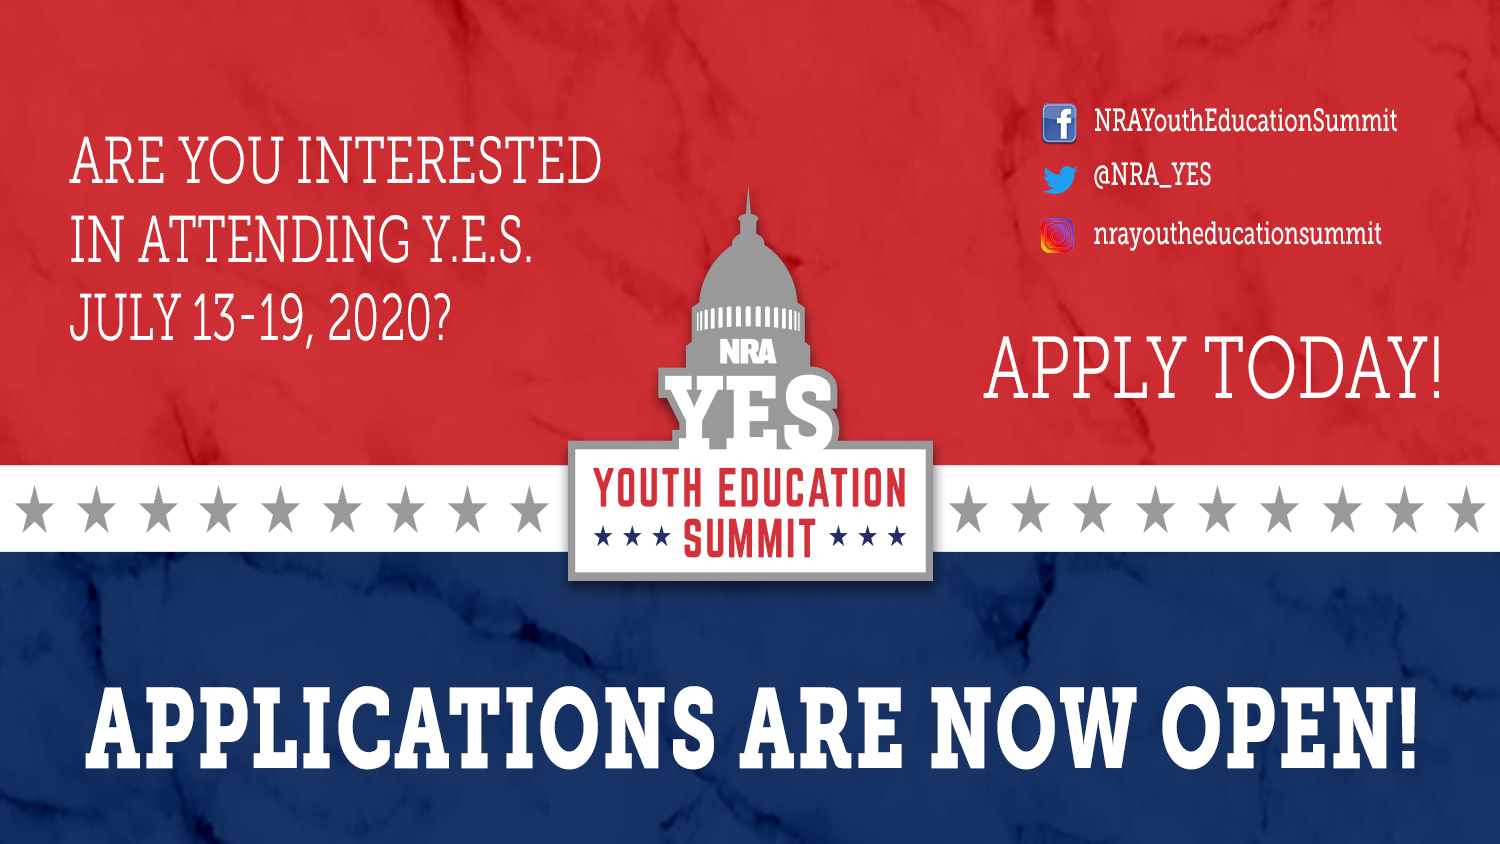 We Want You For Y.E.S. 2020